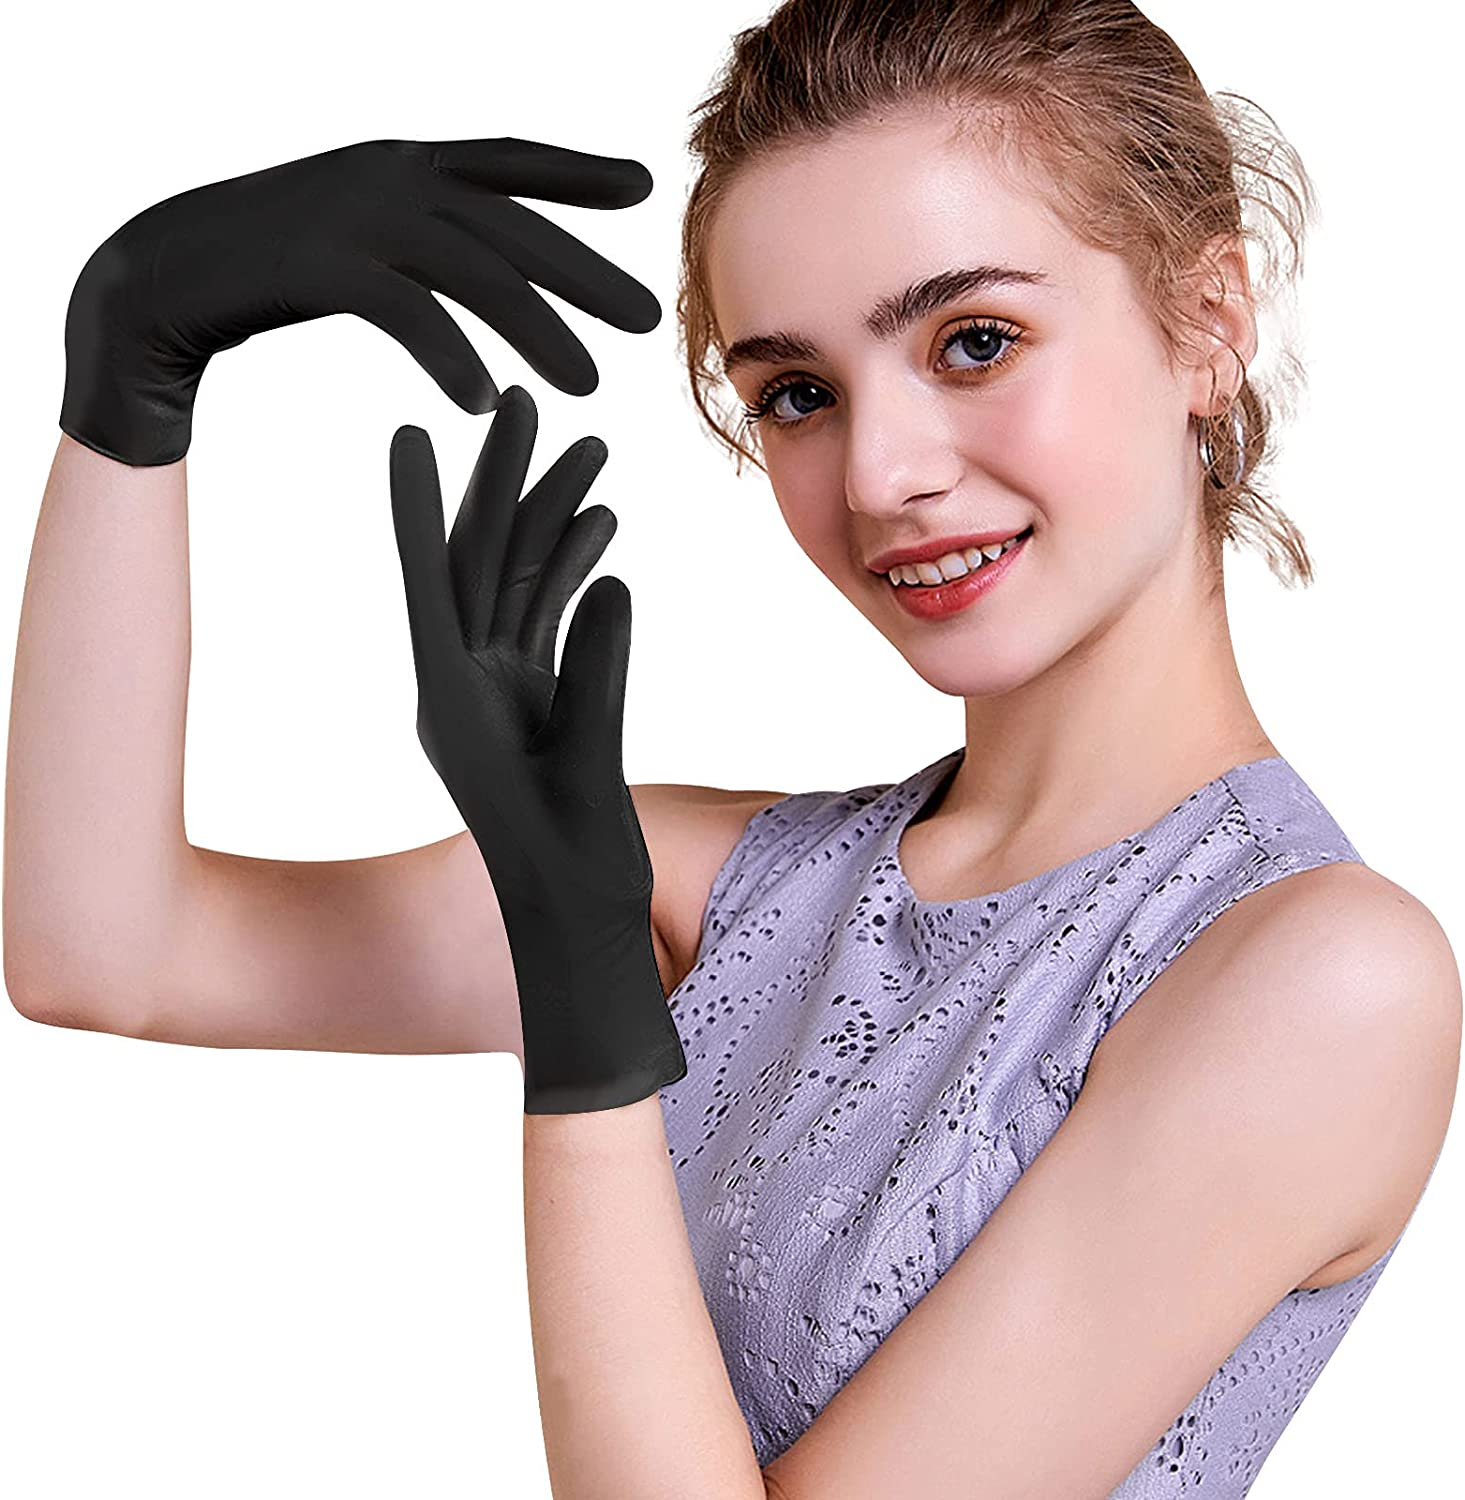 Disposable Nitrile Gloves, Food Safe Gloves Latex-Free & Powder-Free, 3Mil Textured Industrial Exam Gloves, Box of 100